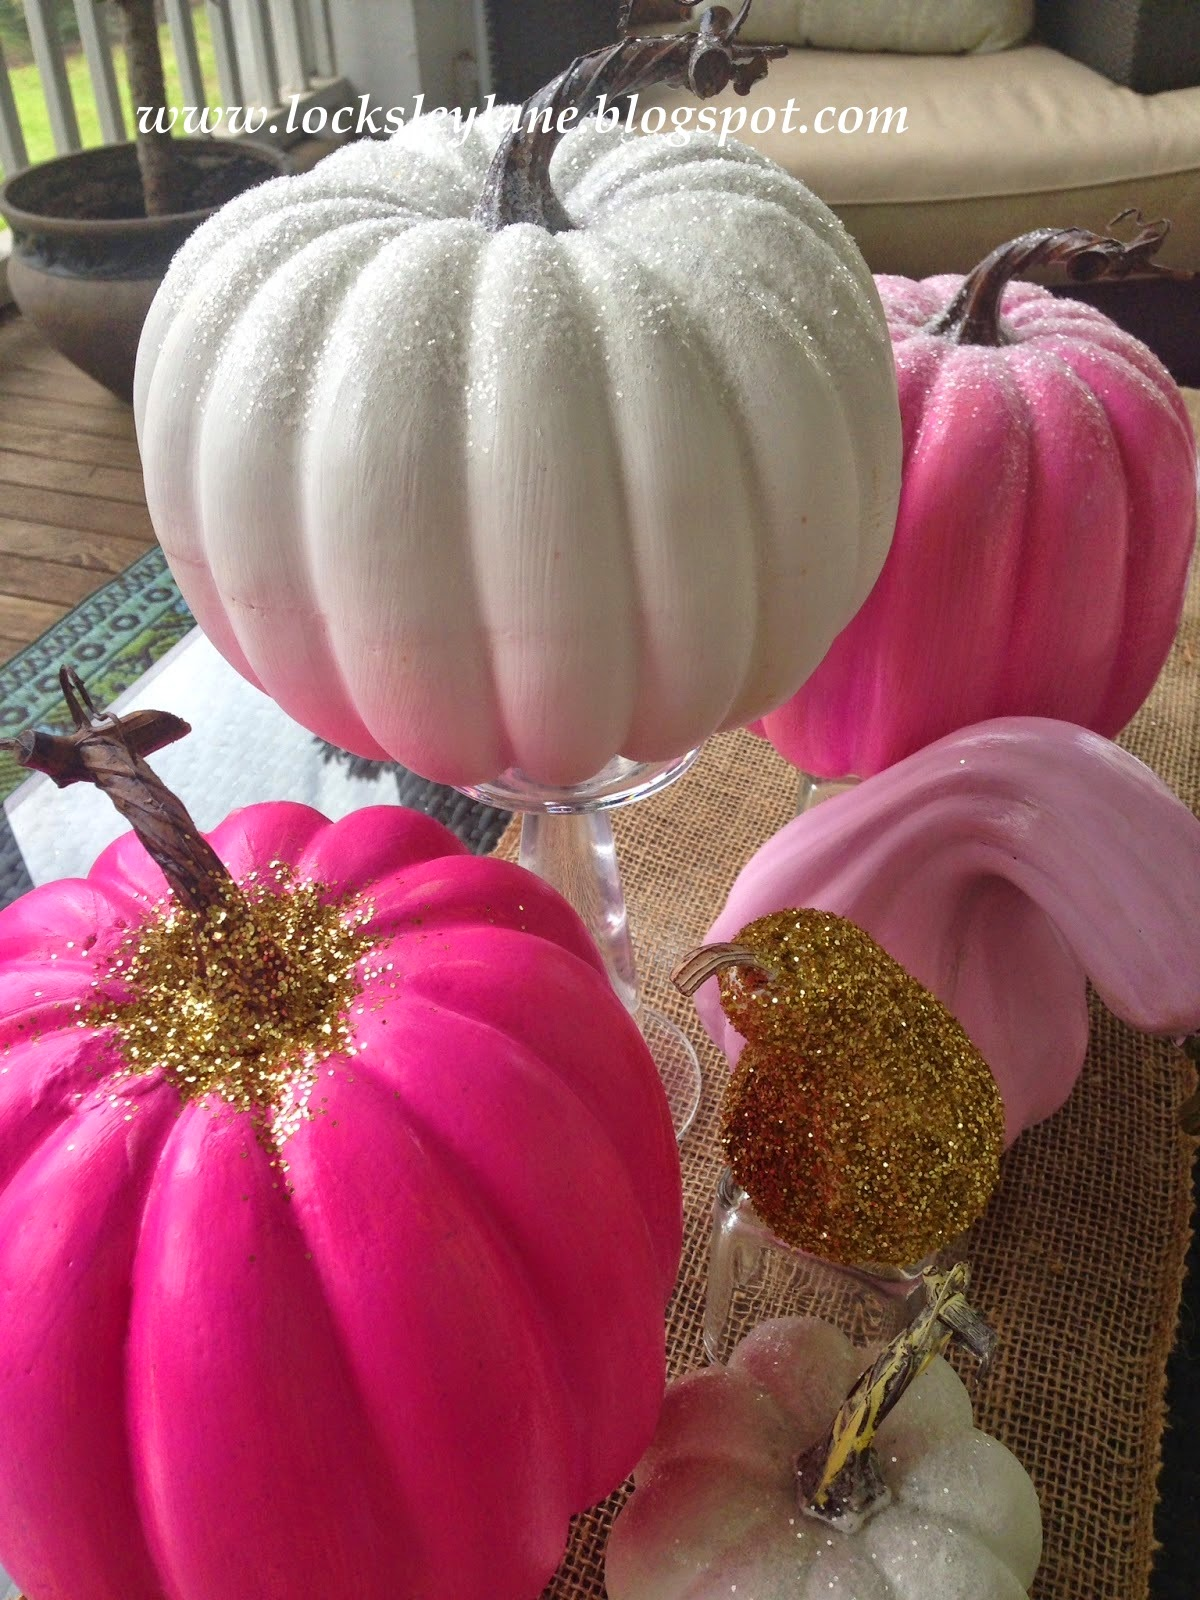 Play Around With Colorix Them Up Who Wants Orange Pumpkins When You Can Have Pink